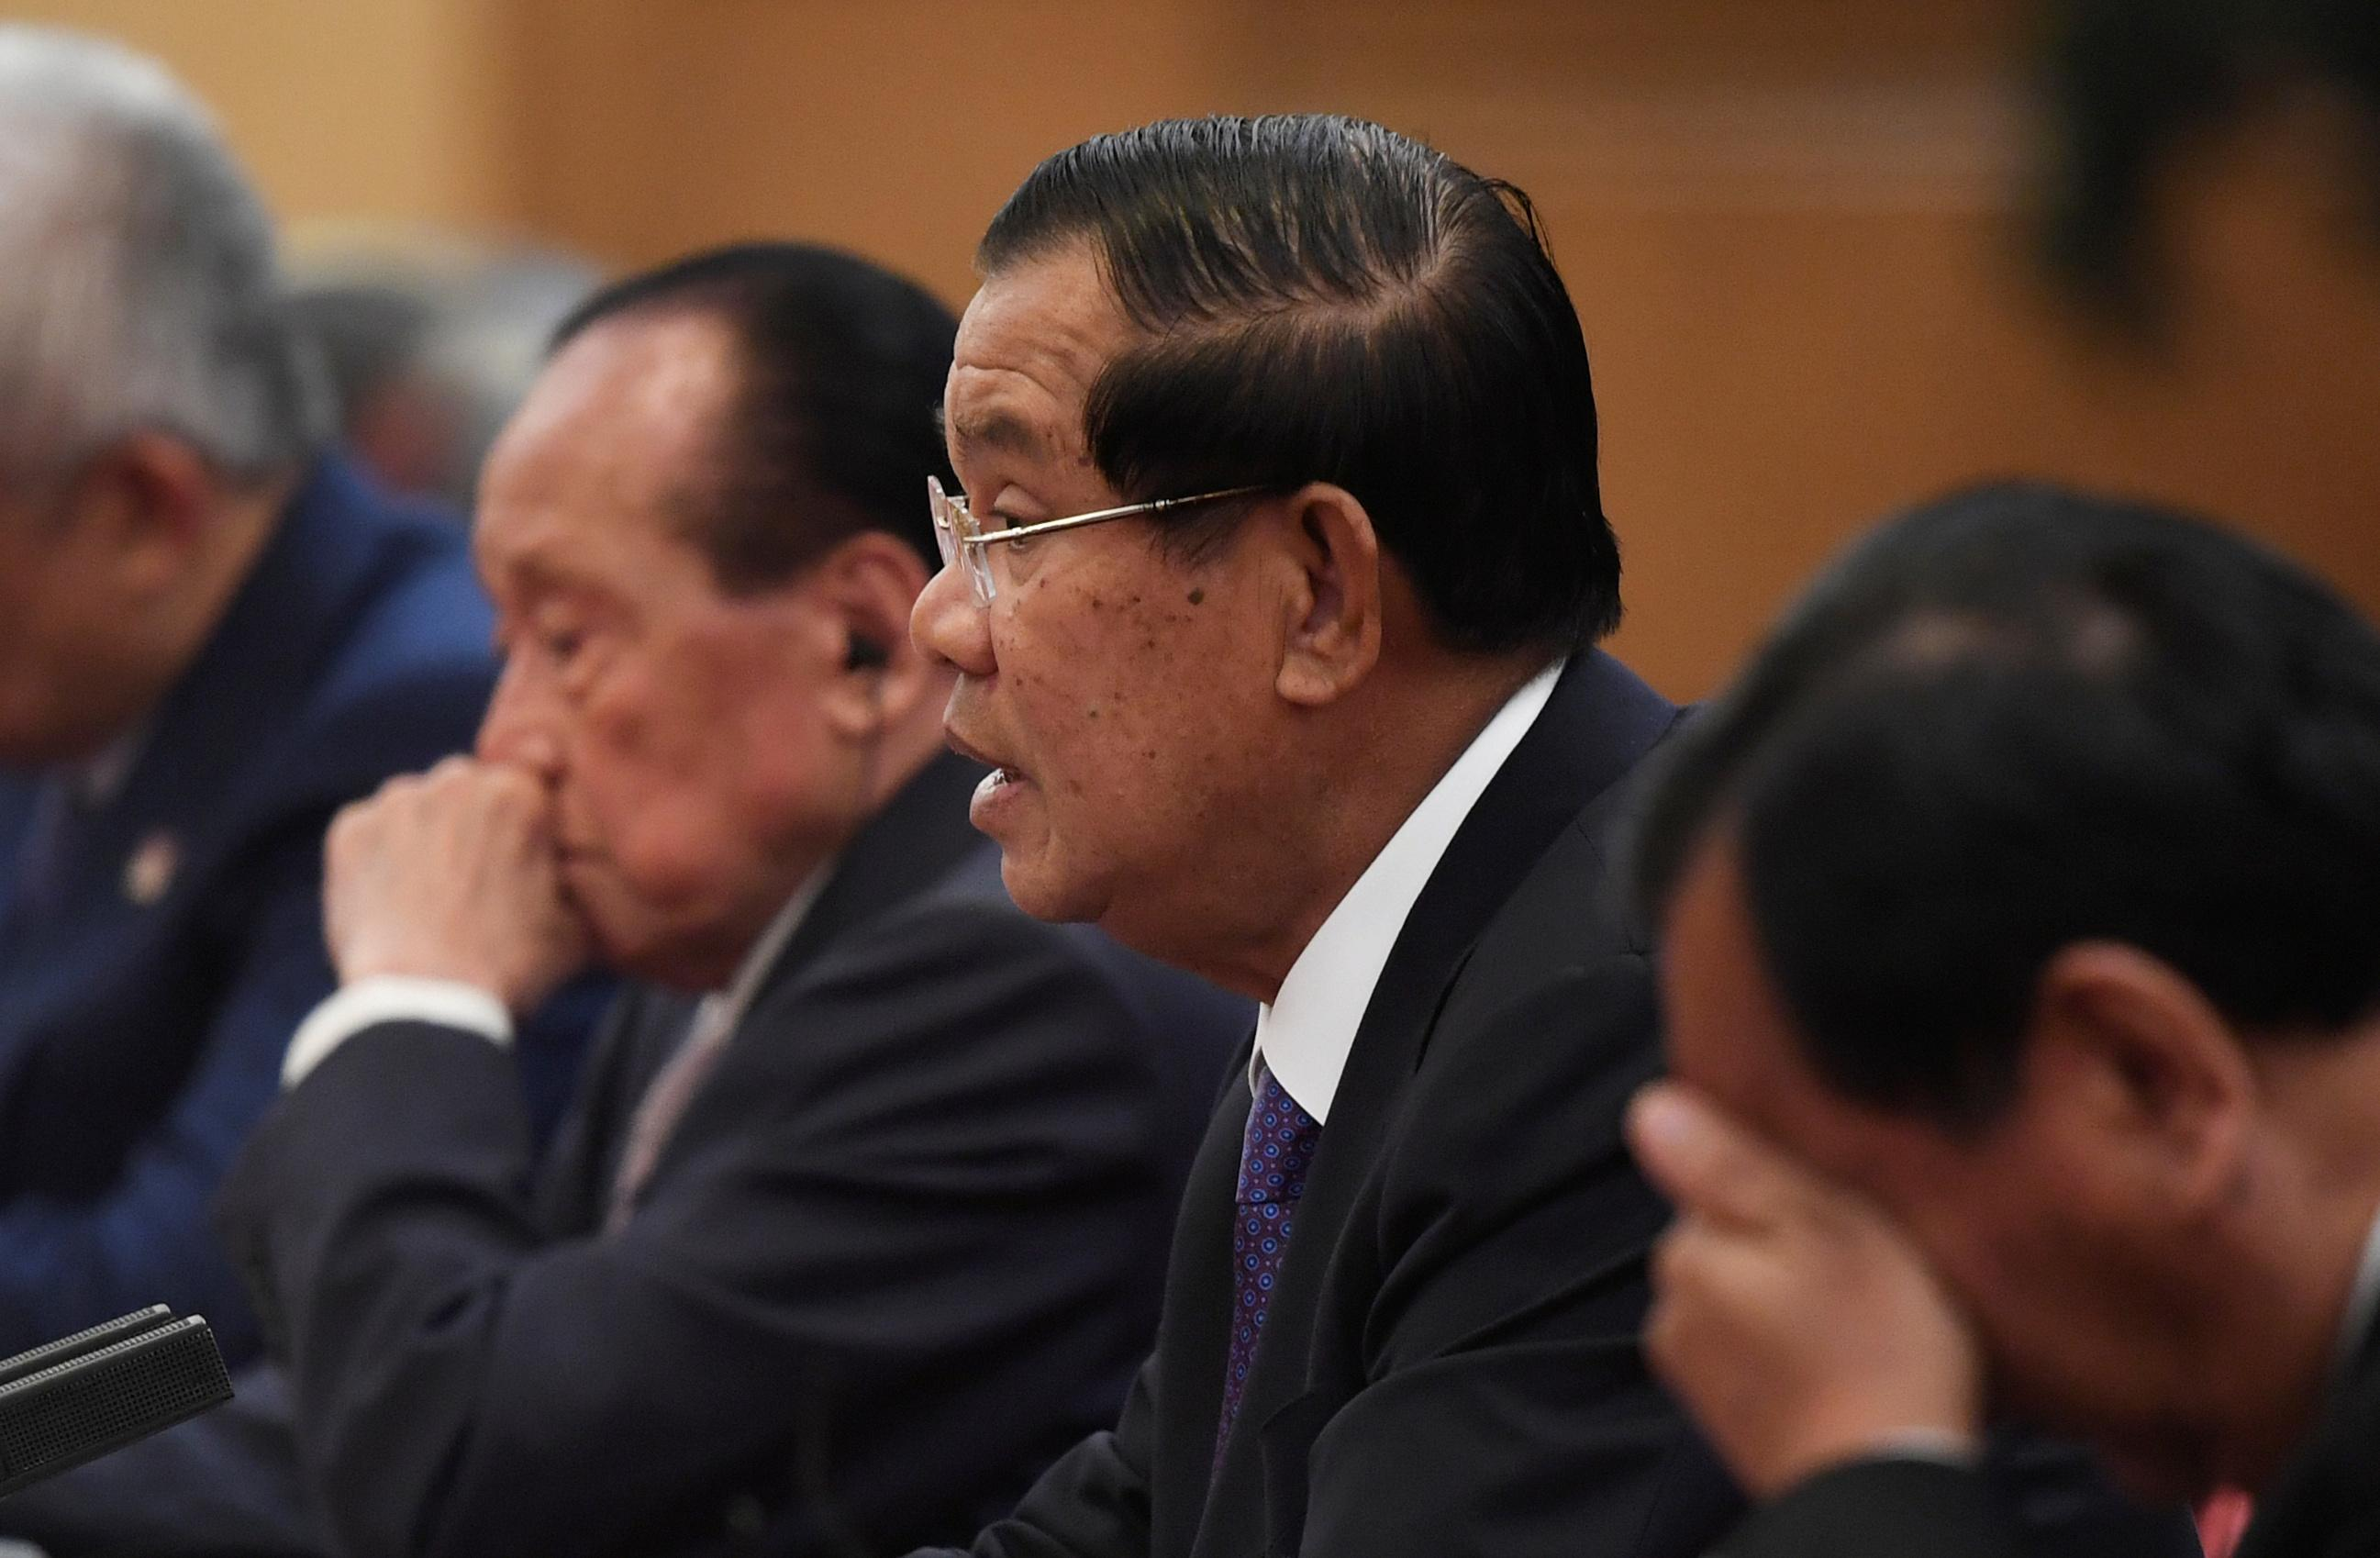 Cambodia targets 140 opposition figures to silence dissent: U.N.